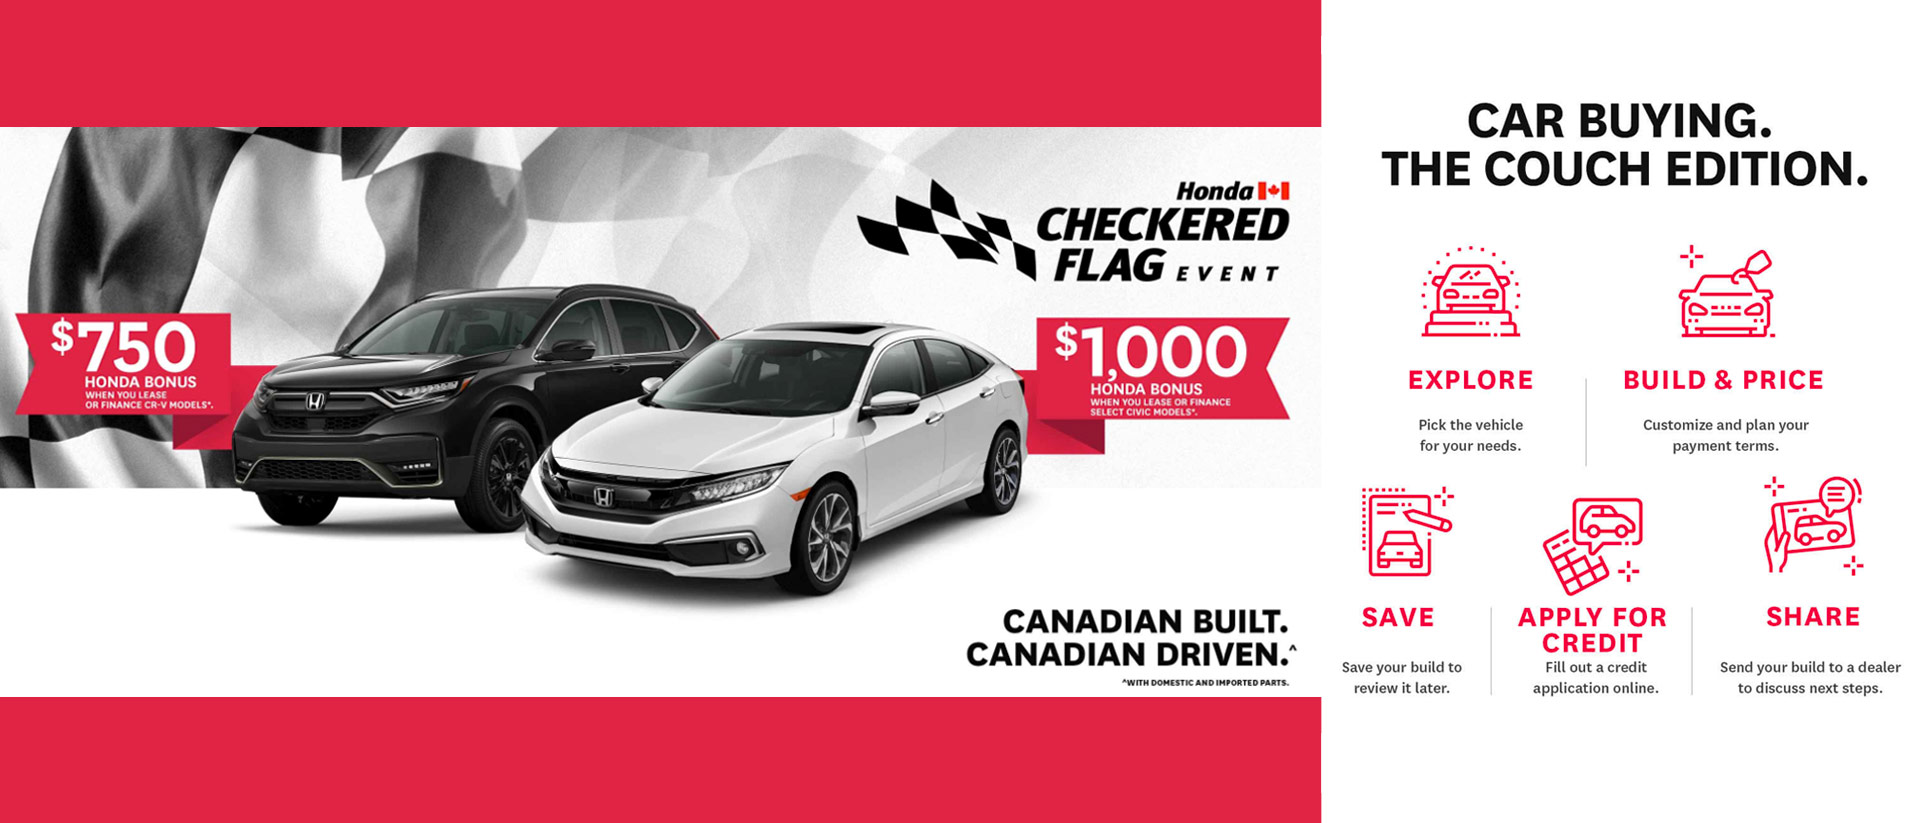 Honda National July2020 Offer 21x9